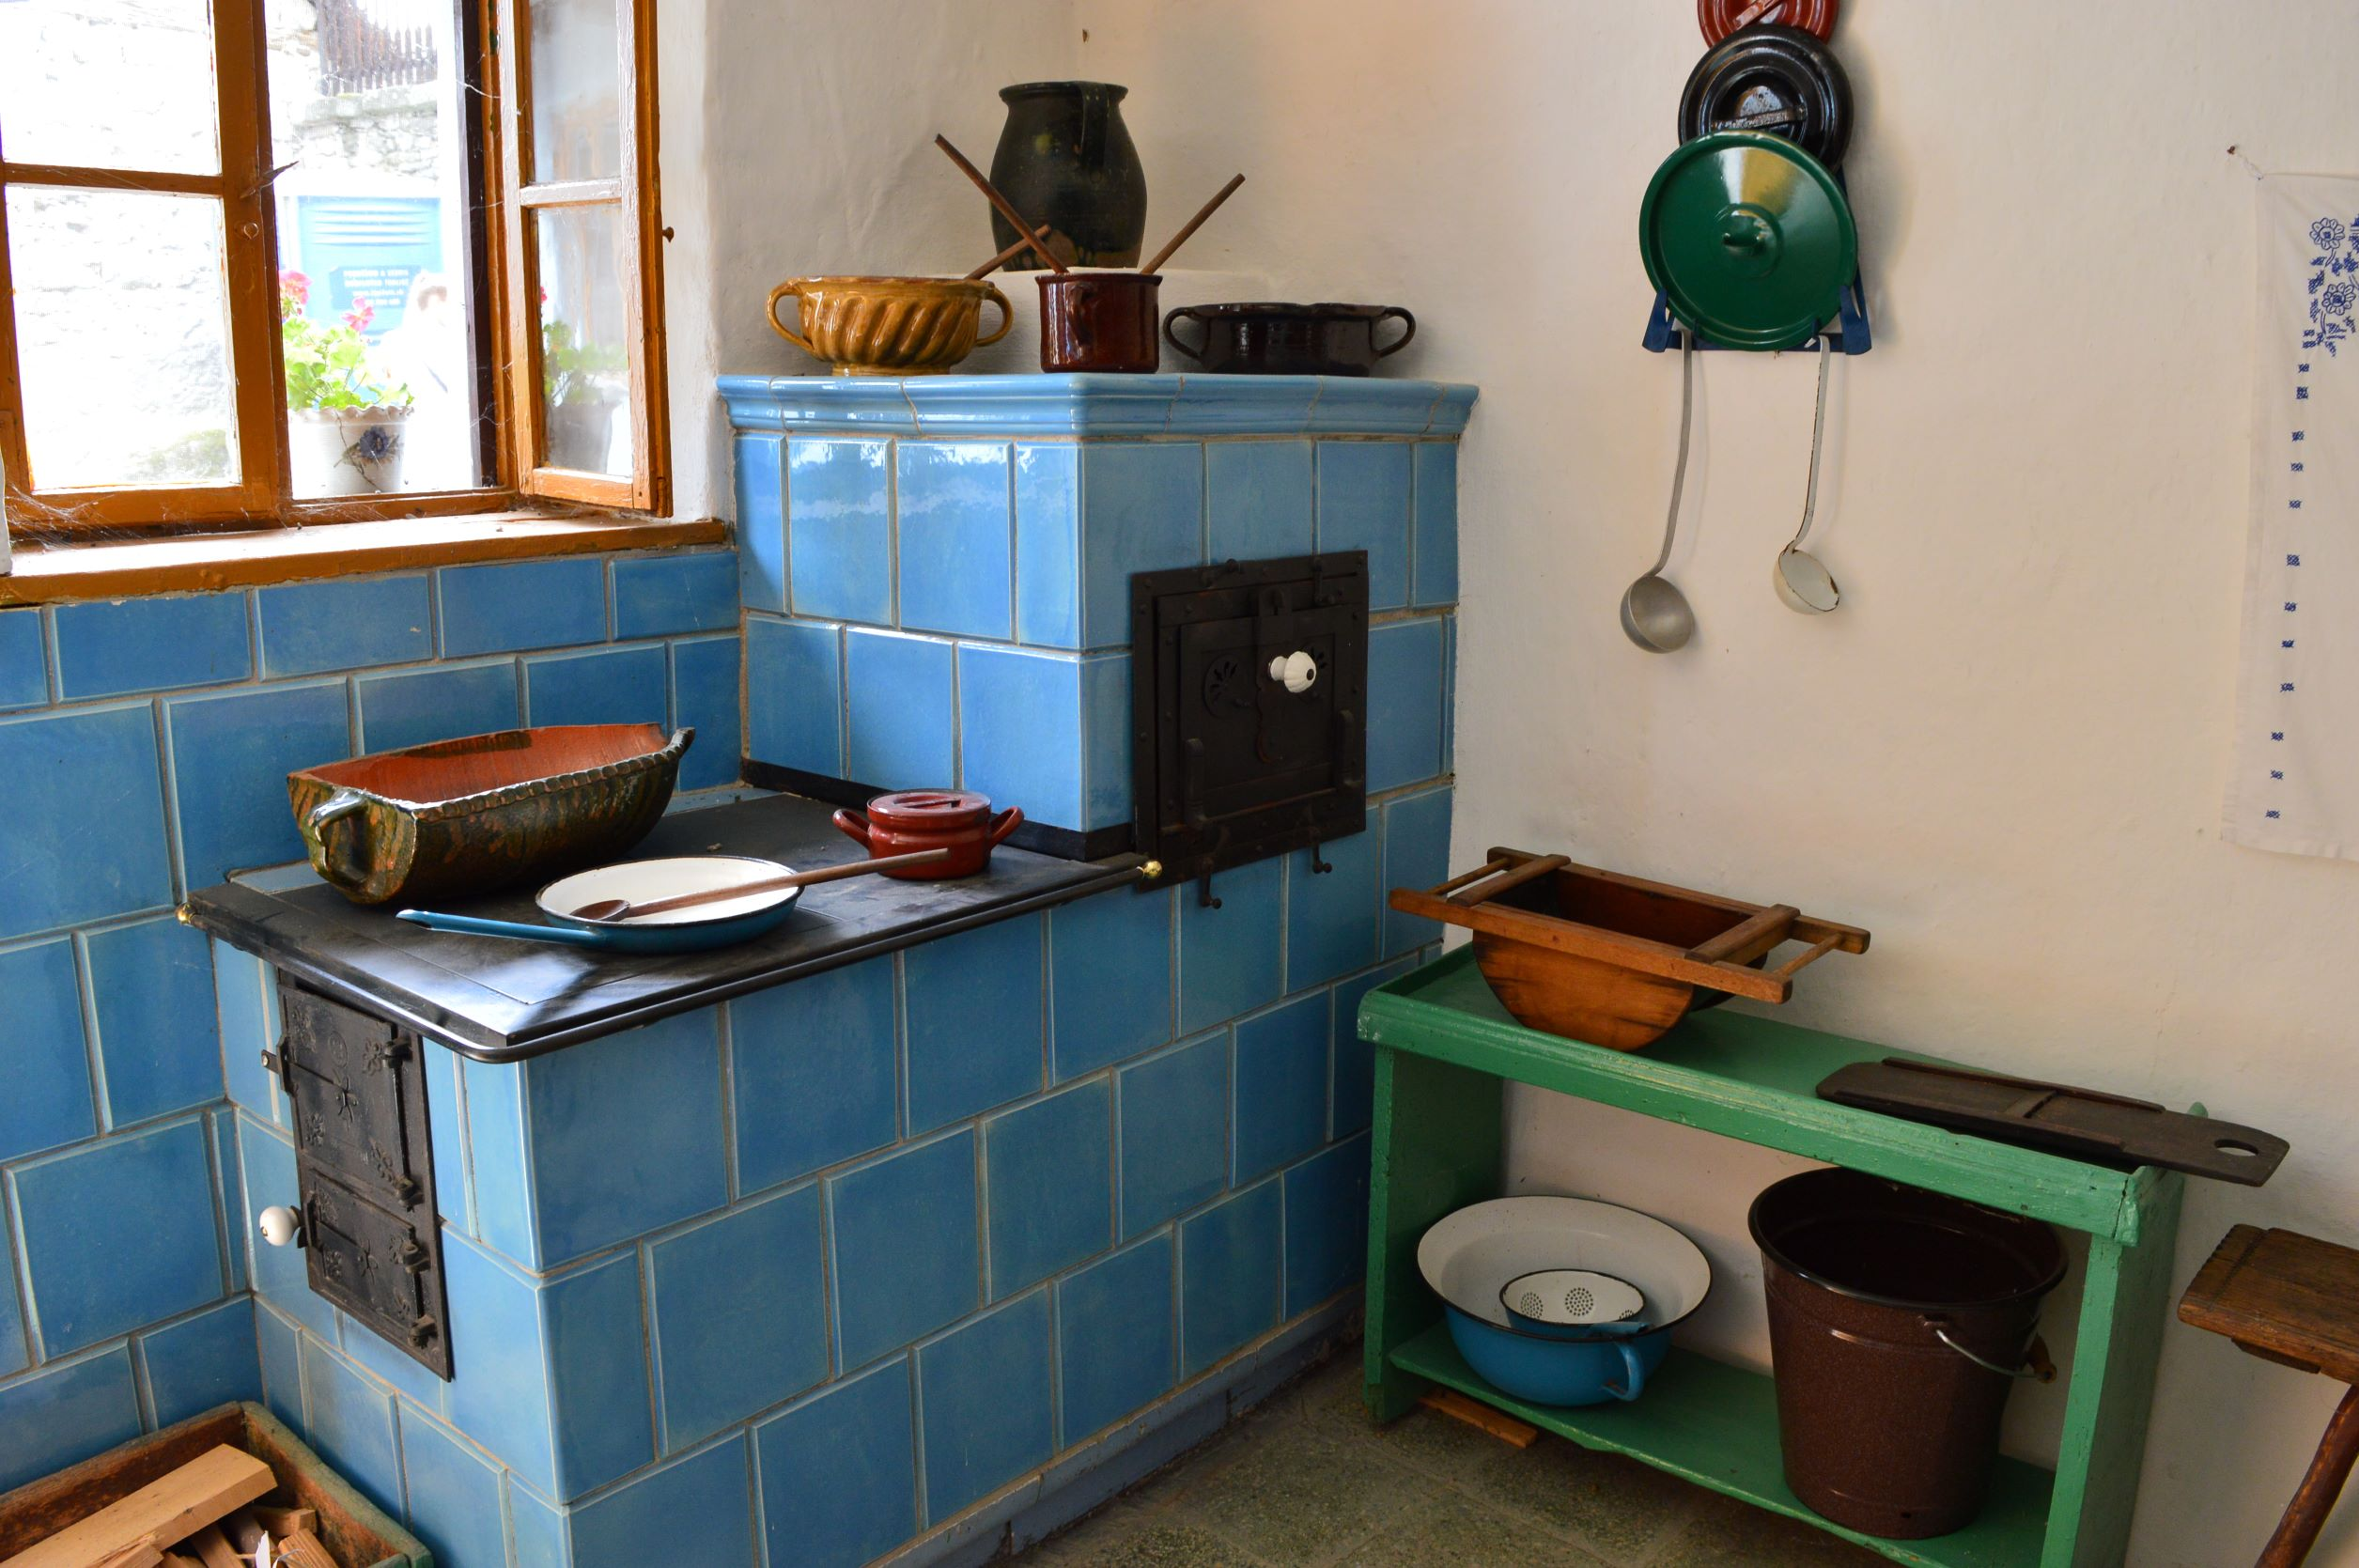 Kitchens of our Grandmas - featured photo